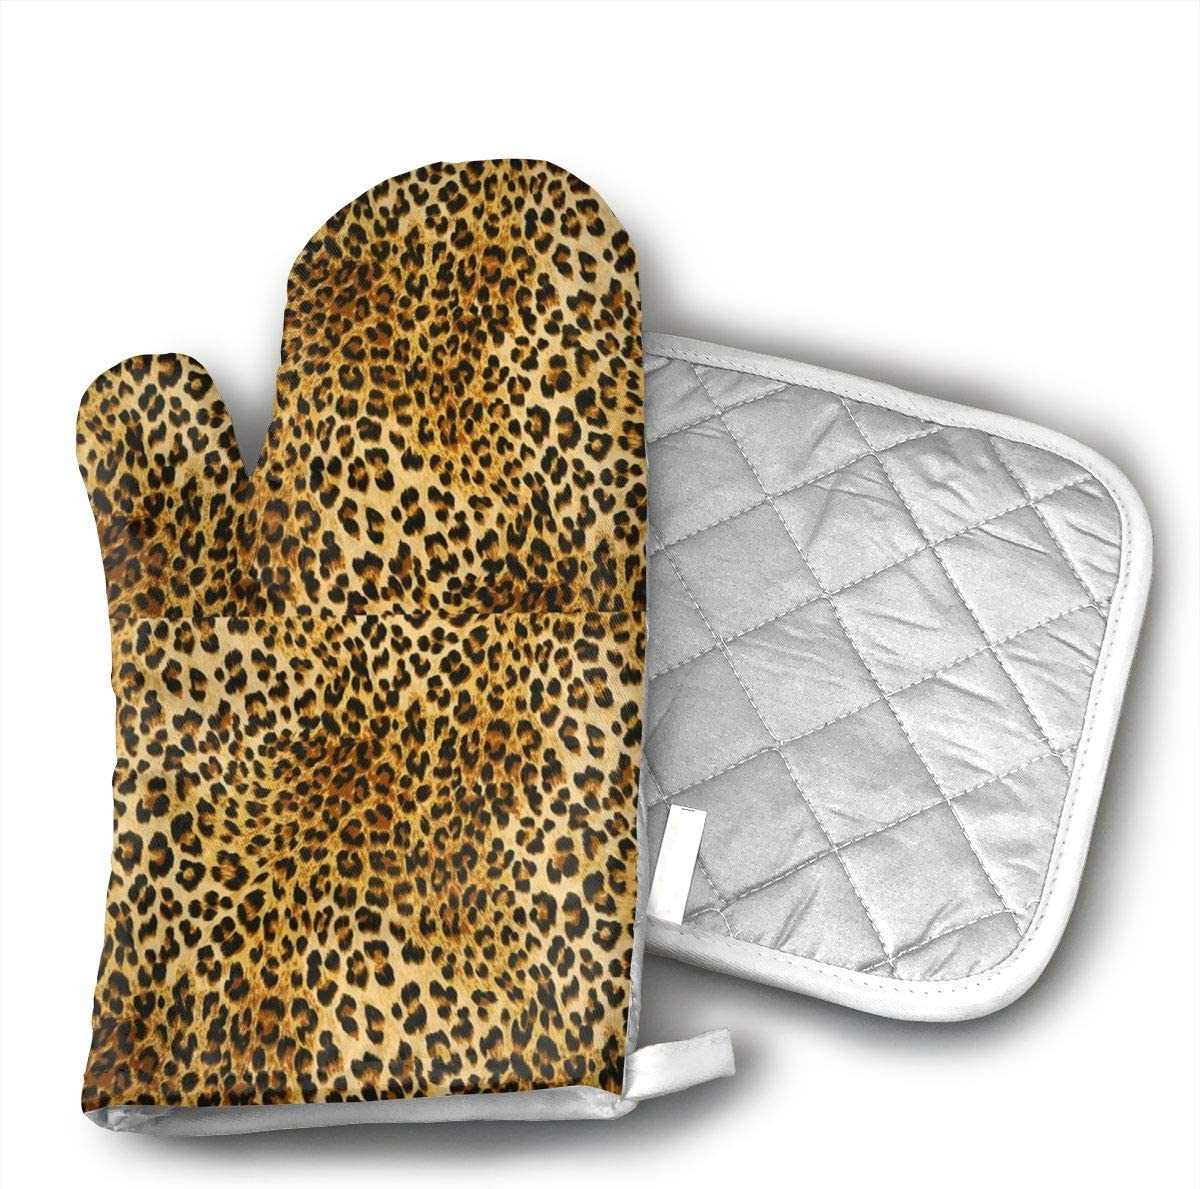 FSDGHVFIJTT ujd Leopard Pattern Neoprene Oven Mitts and Potholder Set-Heat Resistant Oven Gloves to Protect Hands and Surfaces with Non-Slip Grip, Hanging Loop-Ideal for Handling Hot Cookware Items